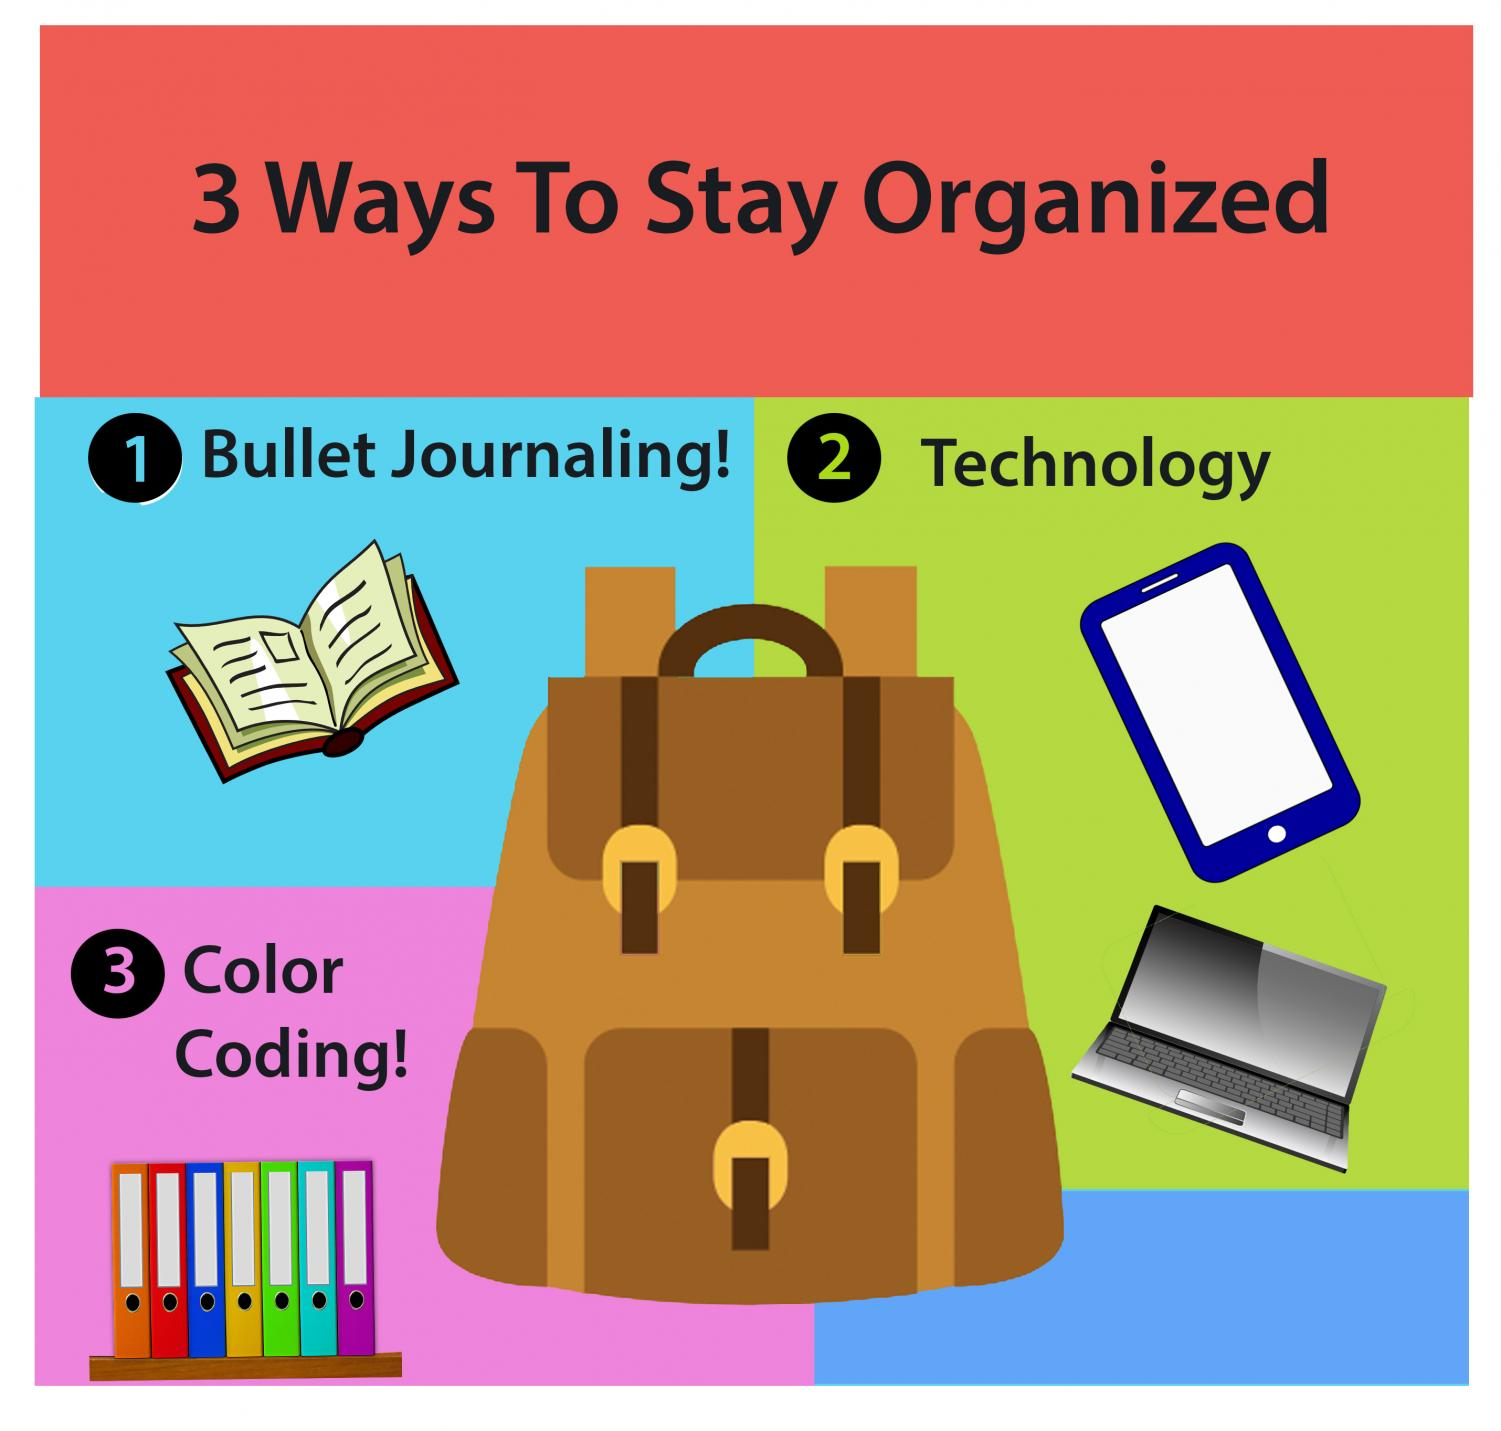 Students can stay organized by using tools and techniques such as bullet journals, technology and color coding materials.